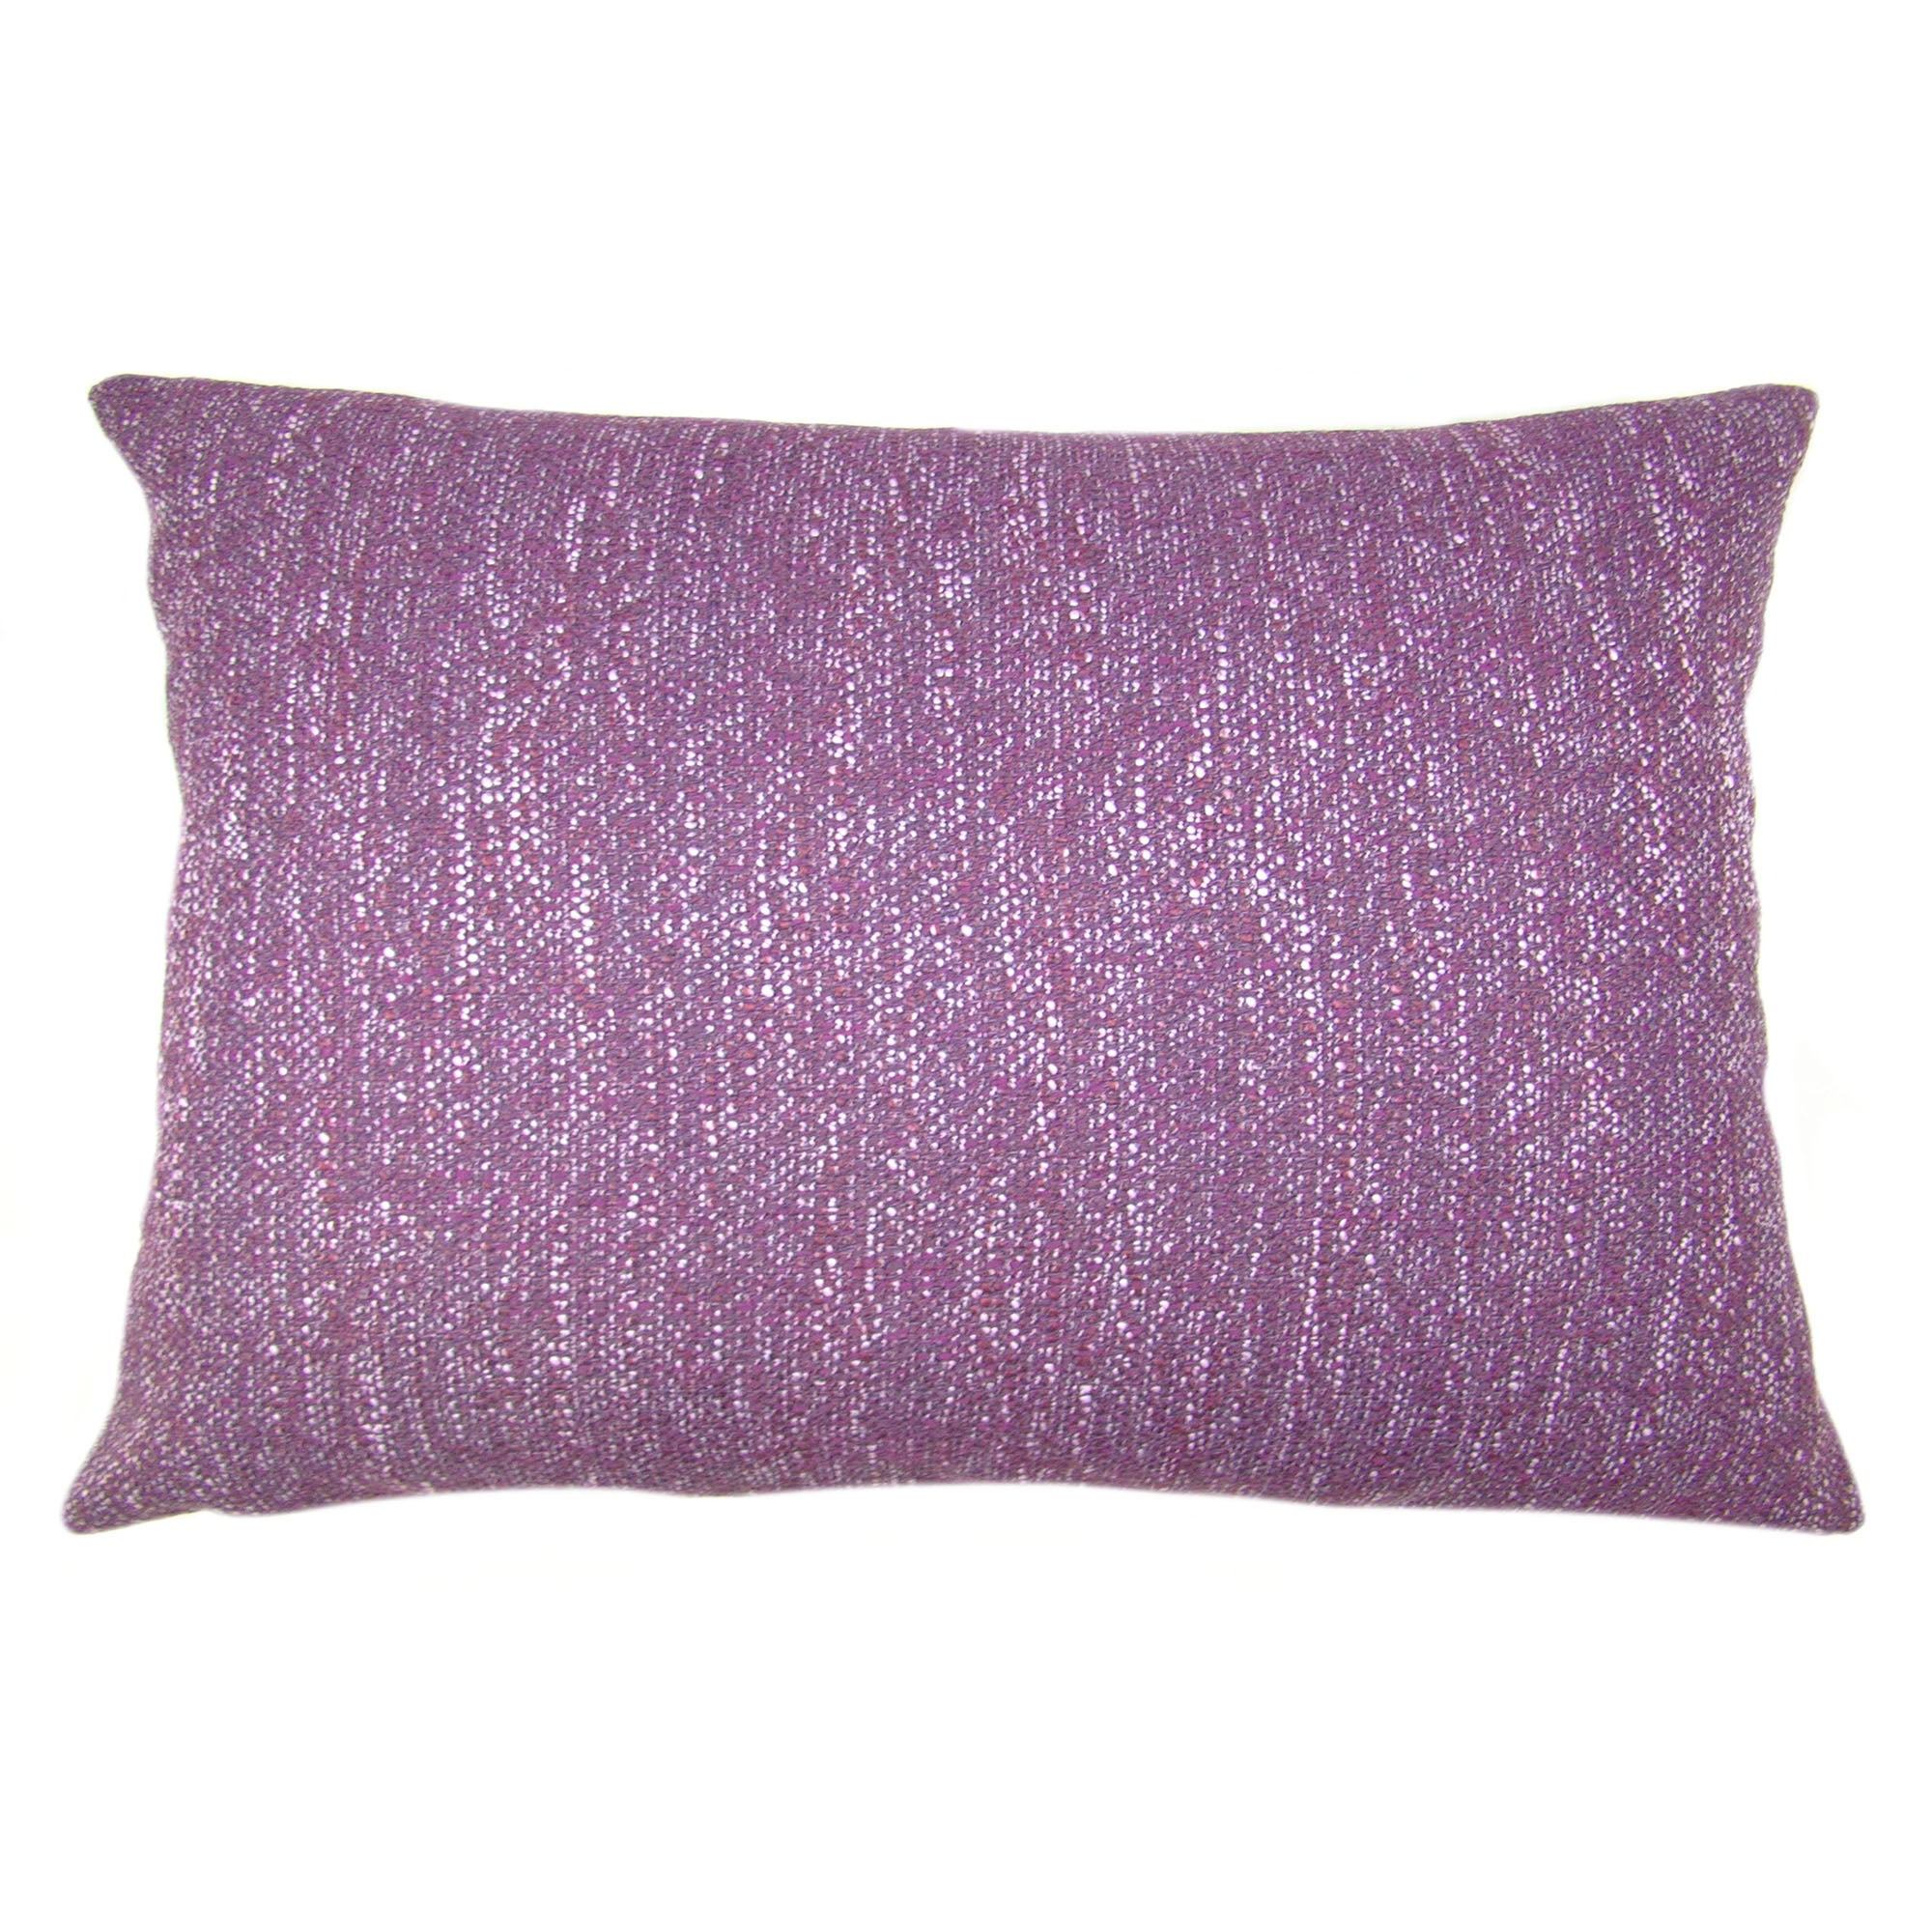 Photo of Carly rectangle cushion cover grape -purple-